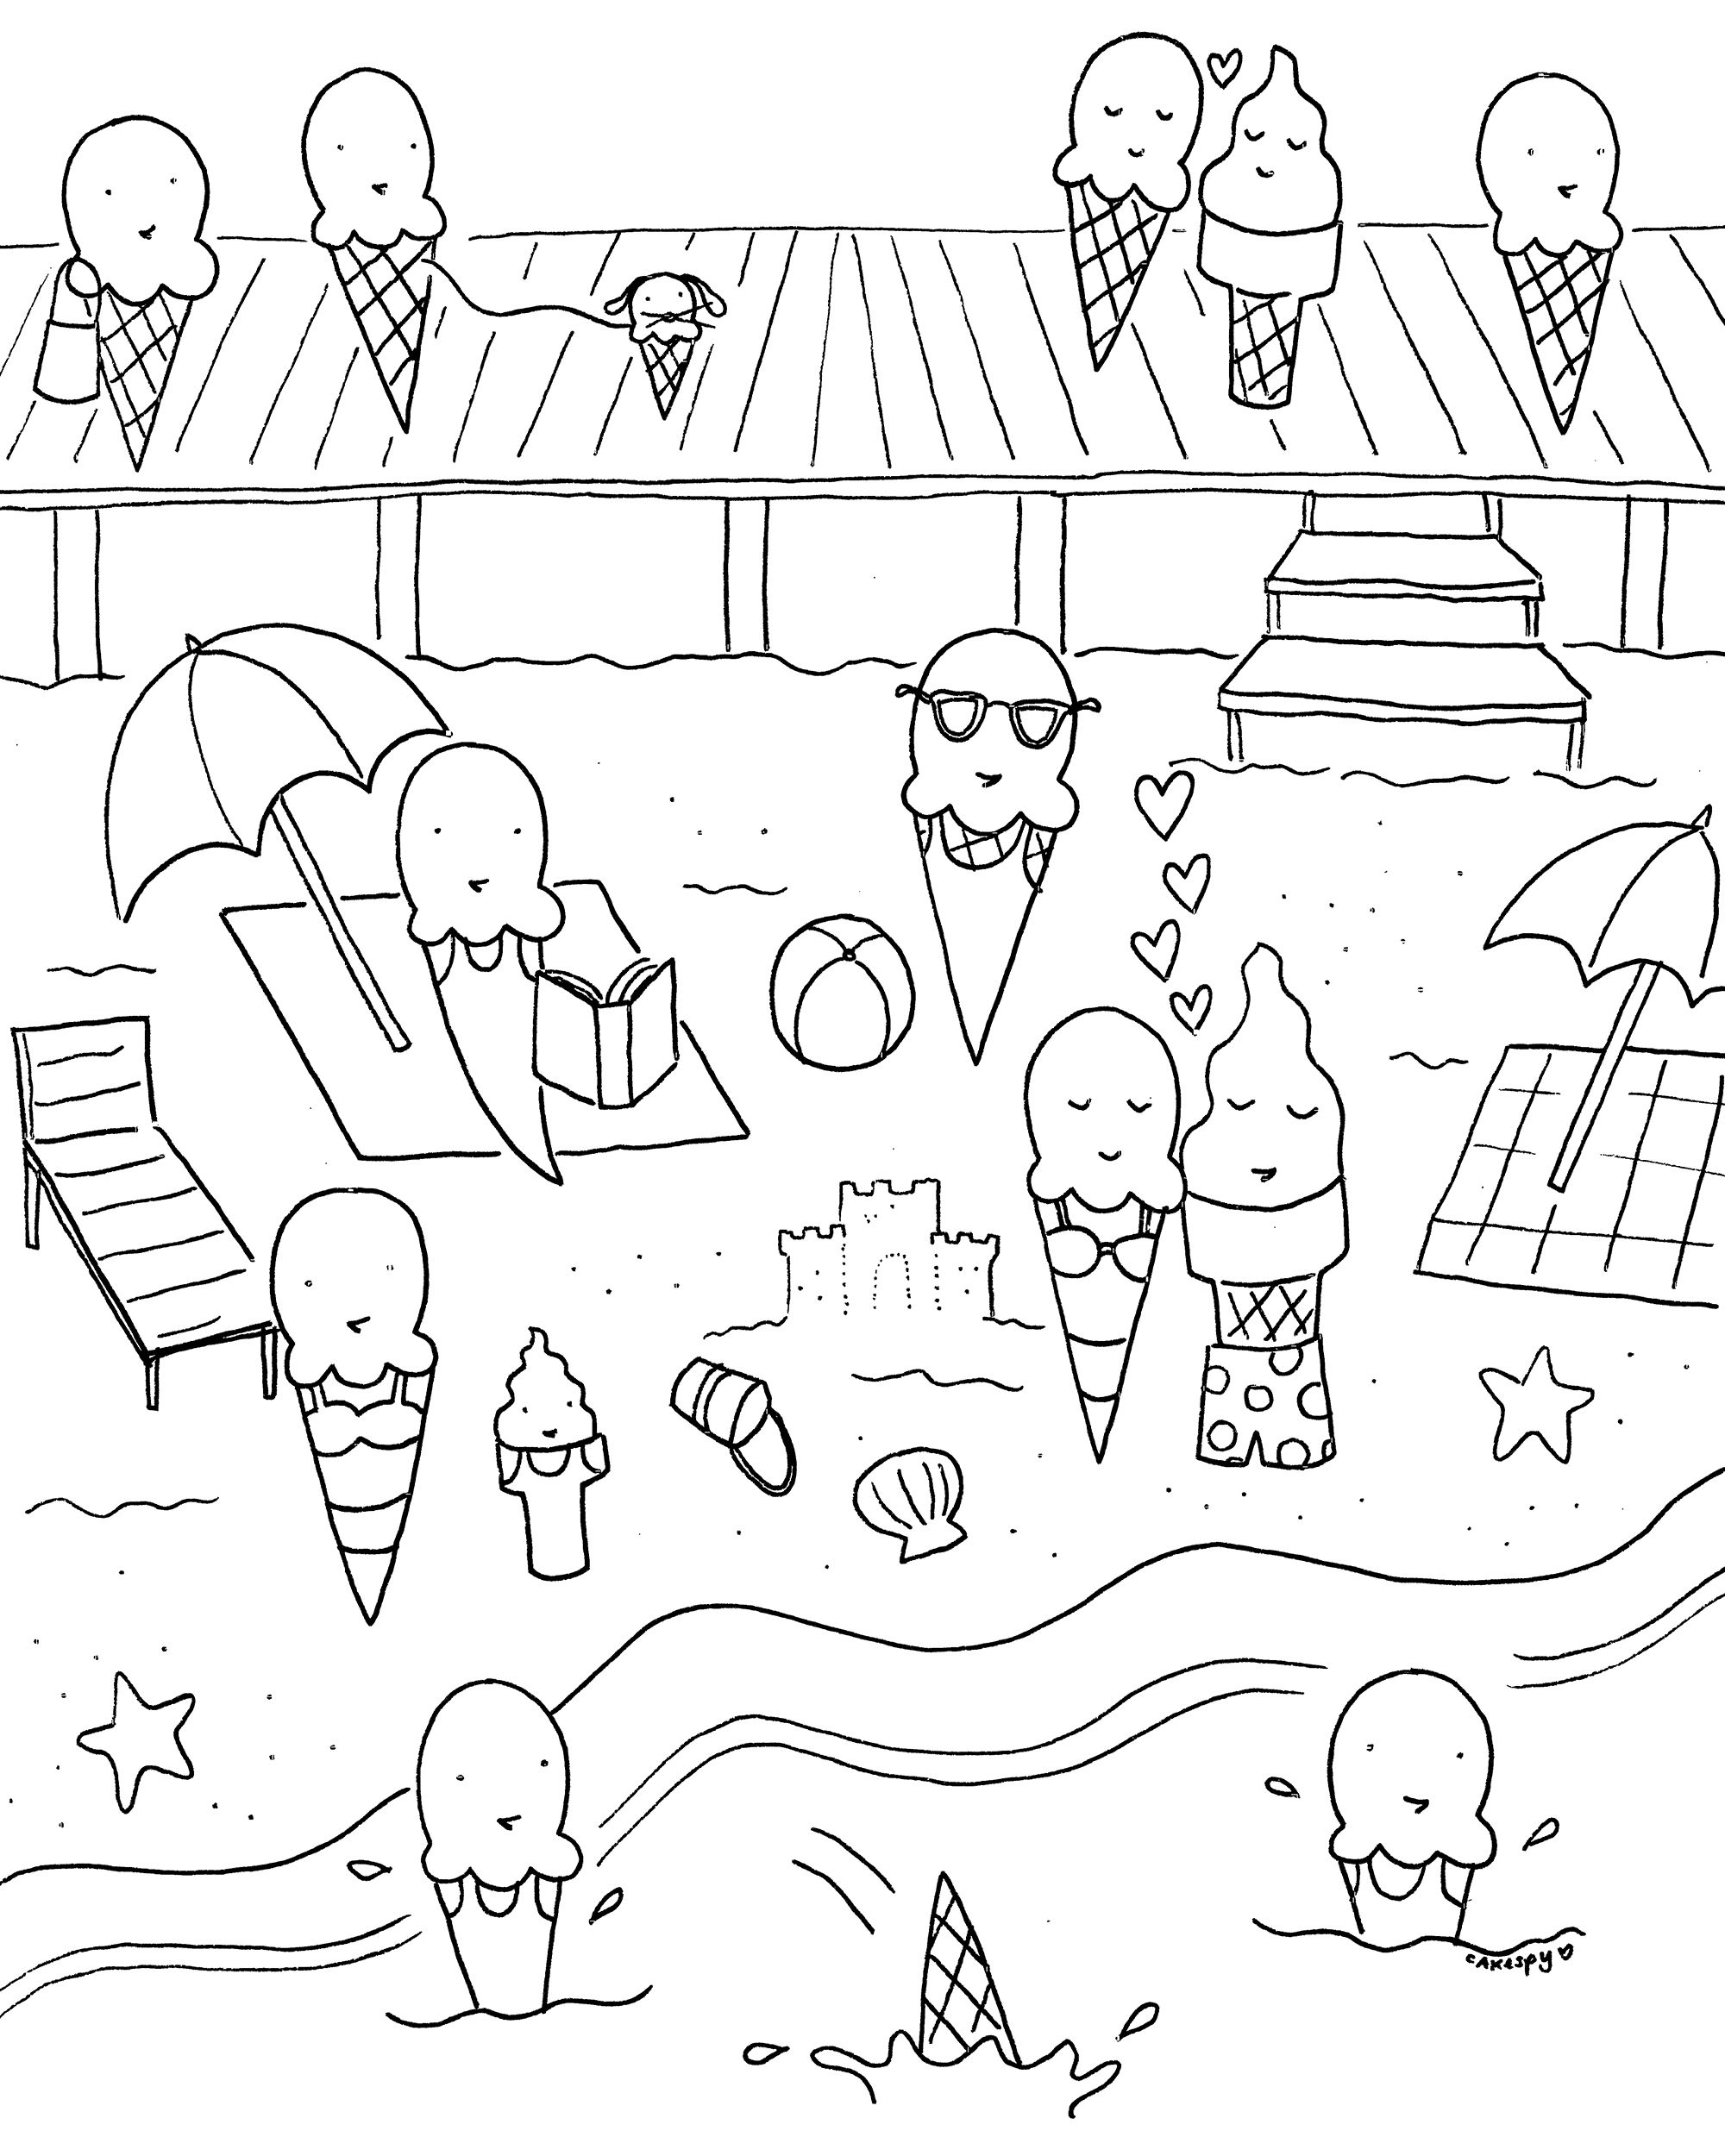 Craftsy Com Express Your Creativity Summer Coloring Pages Cool Coloring Pages Preschool Coloring Pages